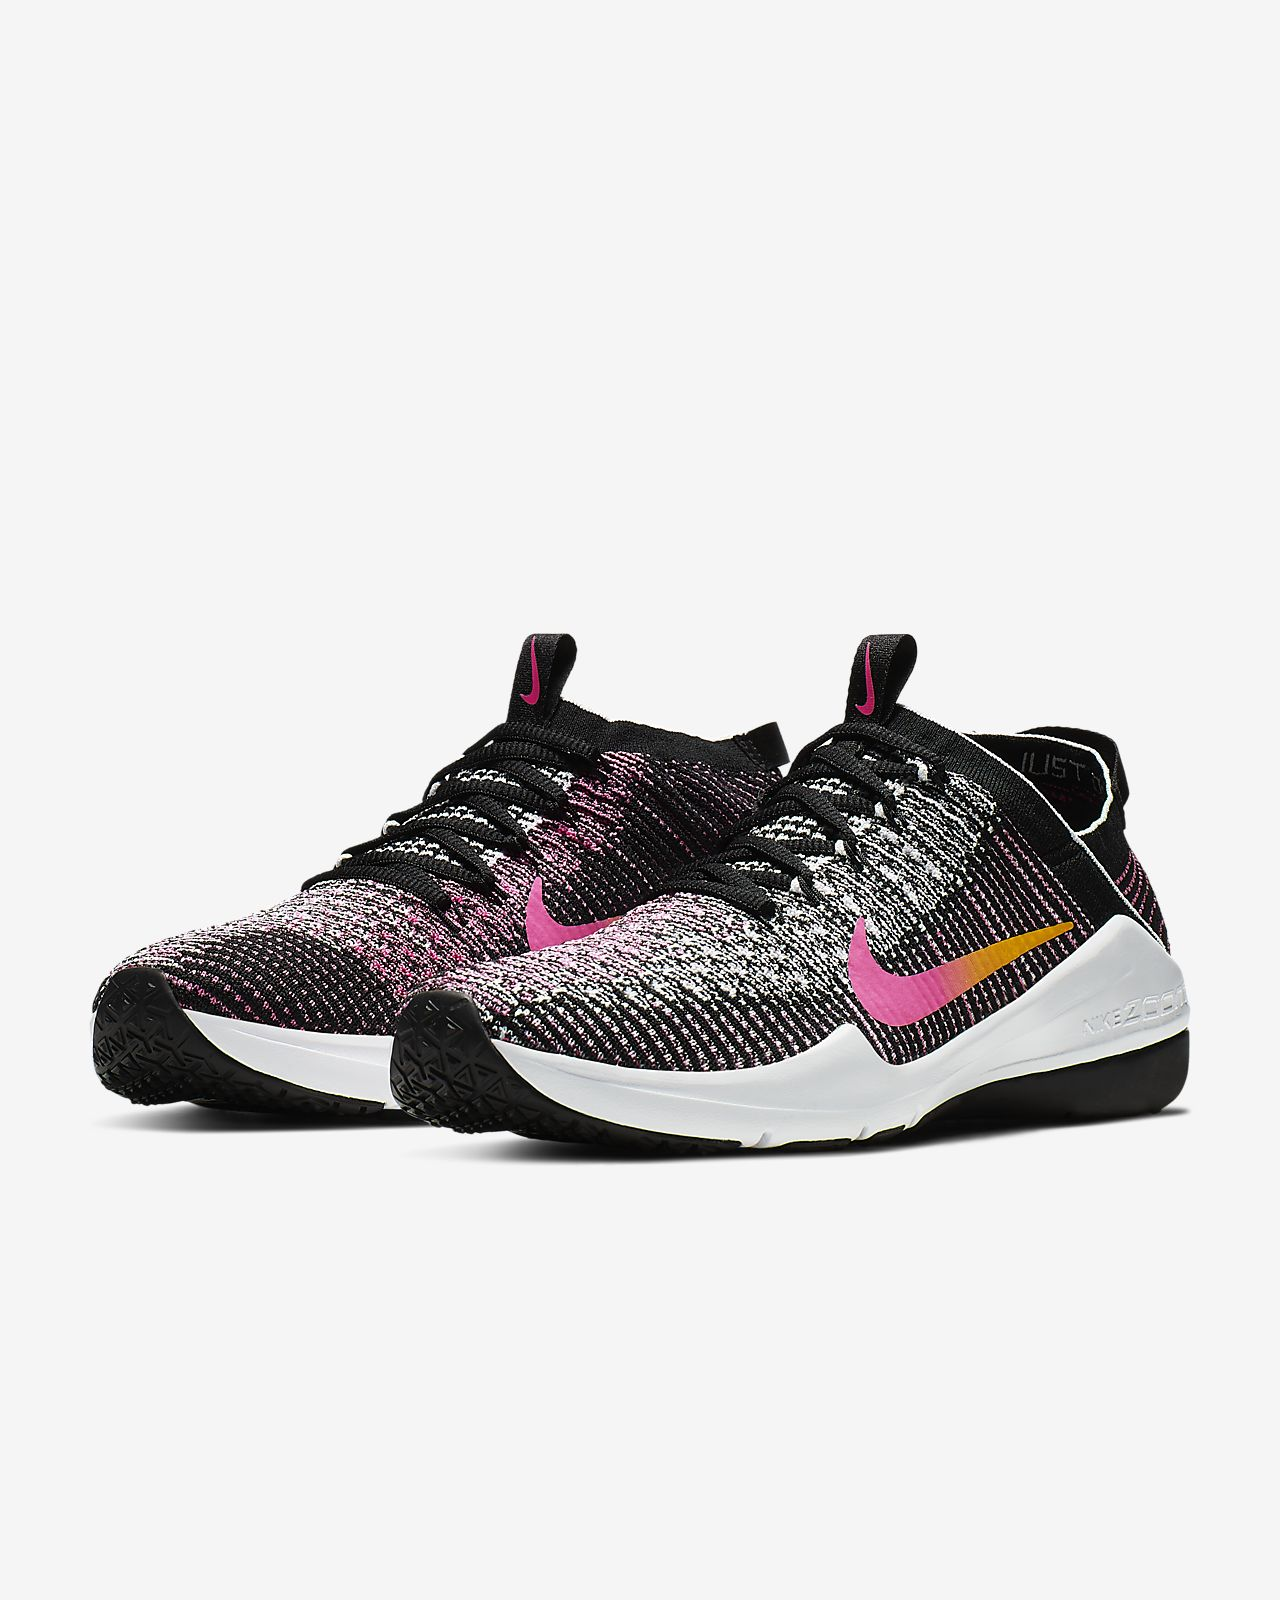 online retailer c6295 9452a ... Nike Air Zoom Fearless Flyknit 2 Women s Gym Training Boxing Shoe